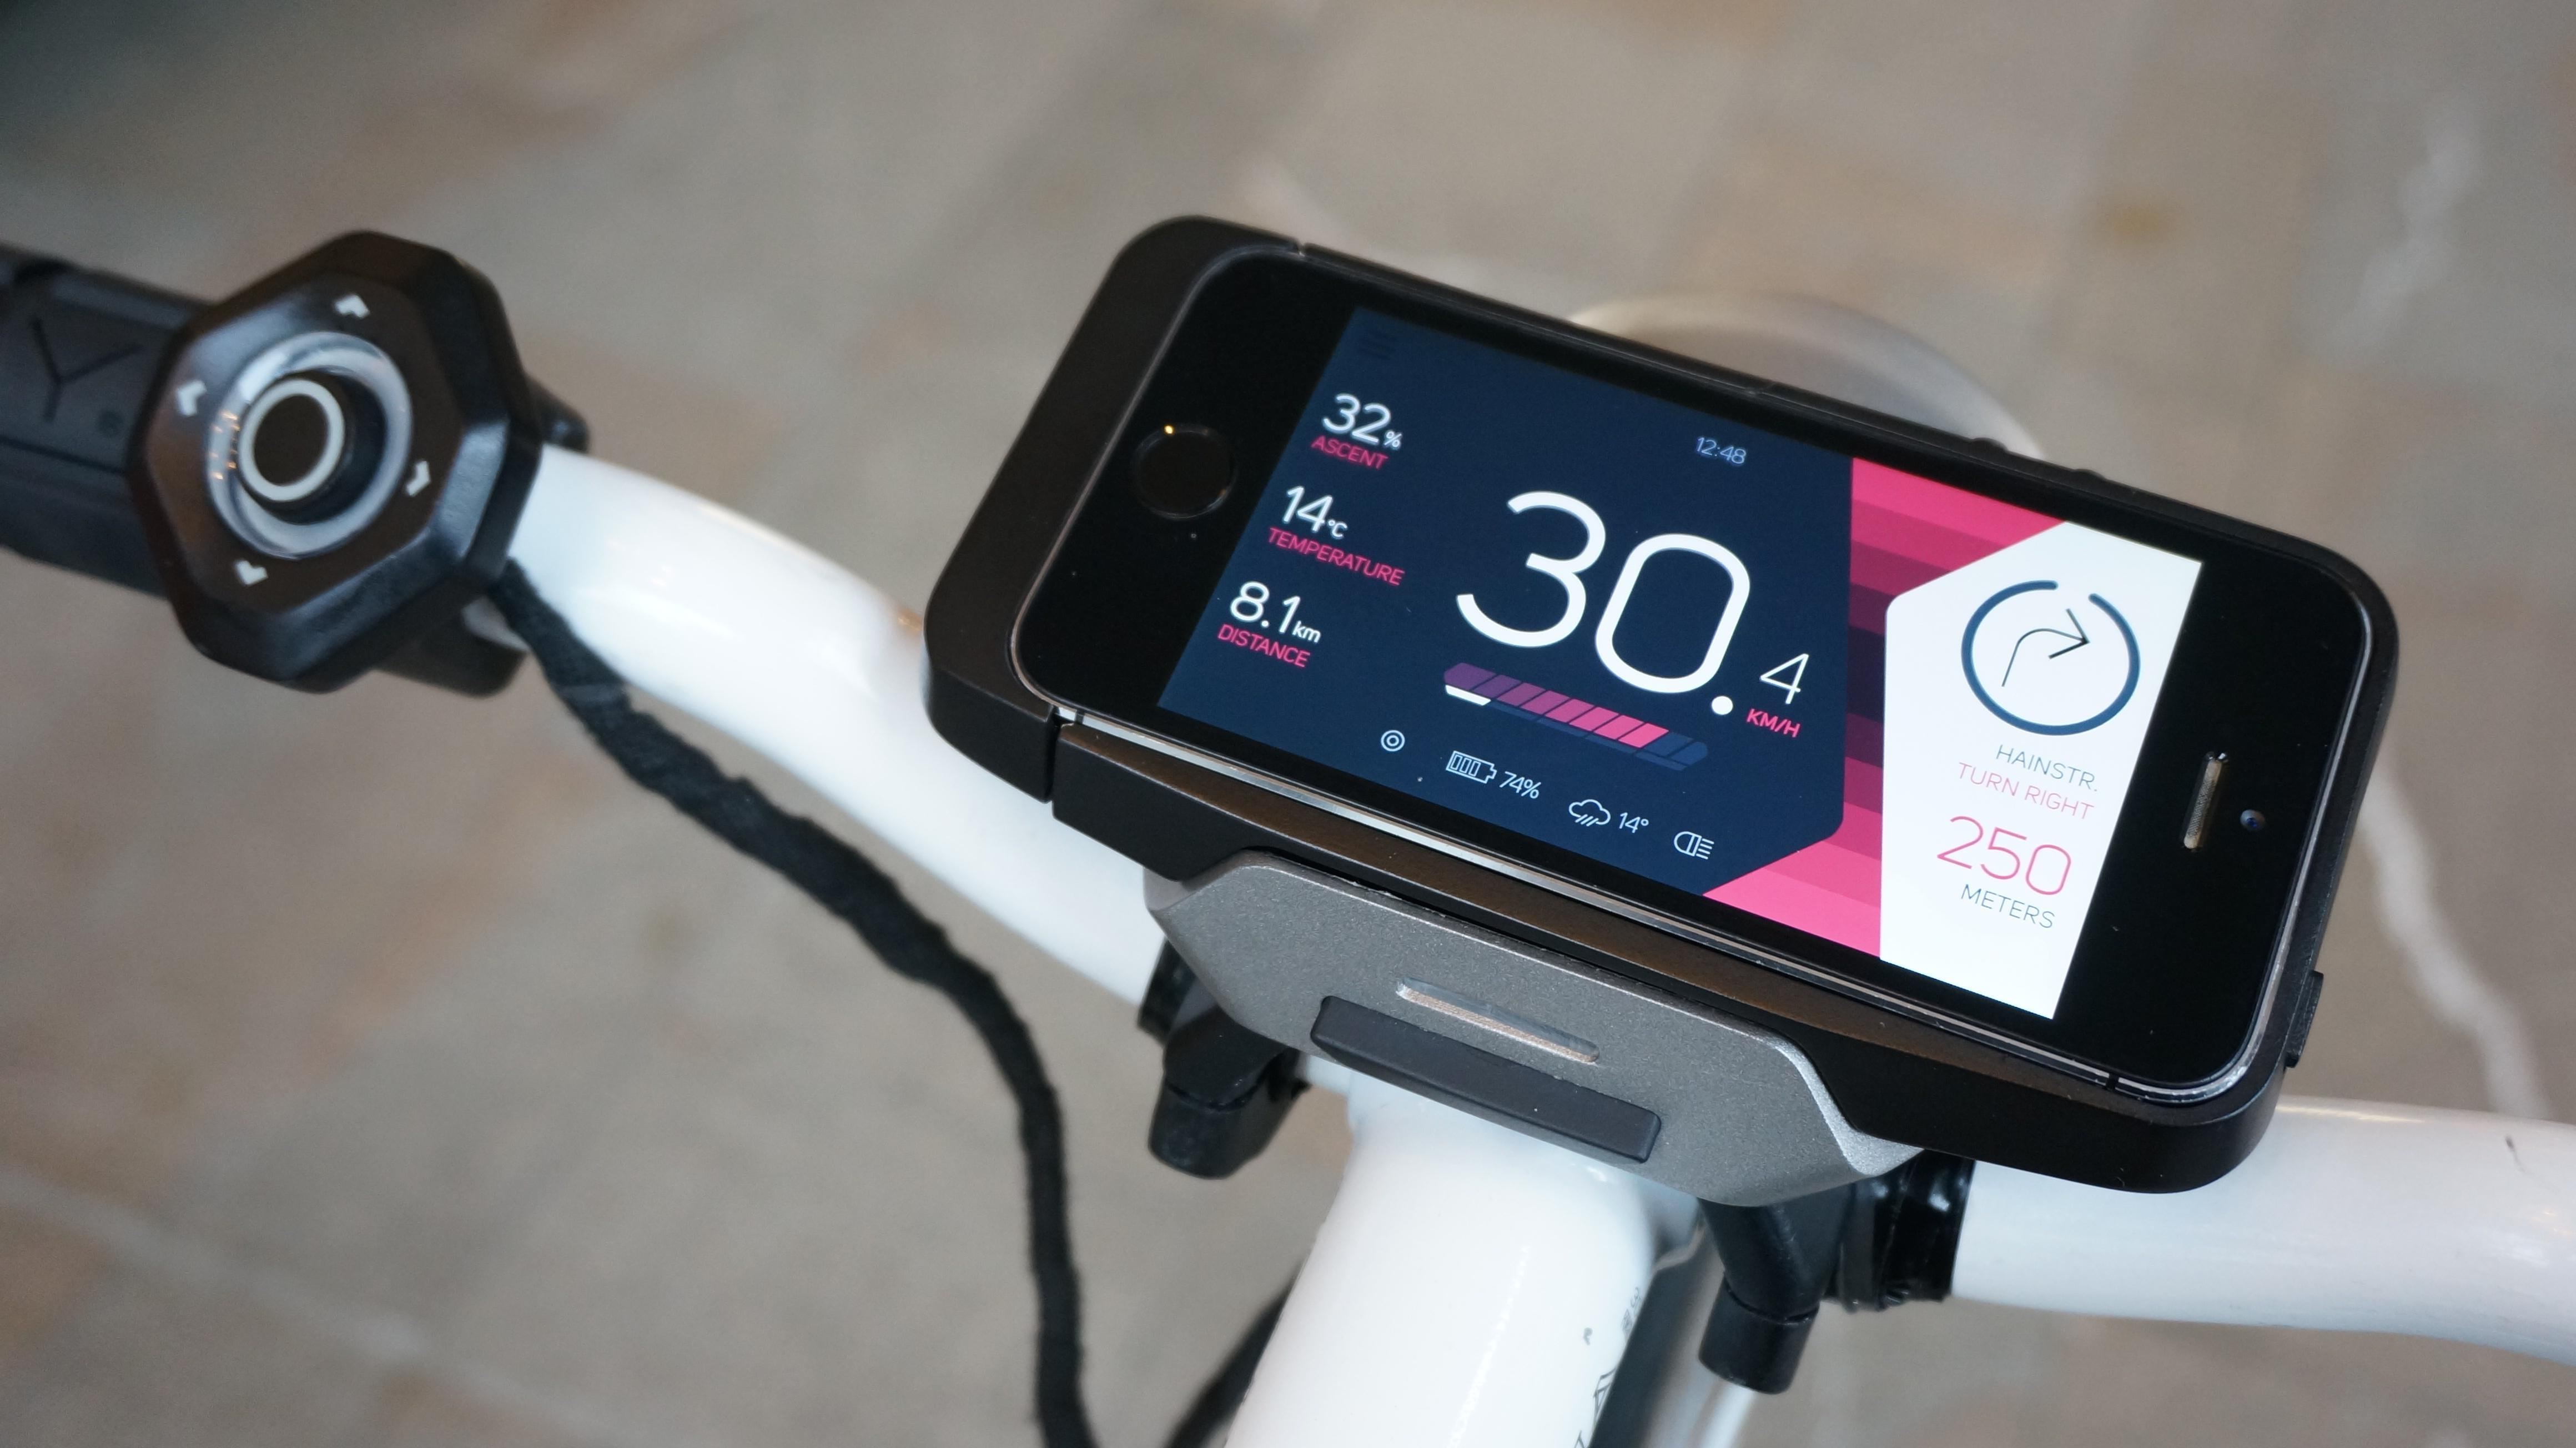 Your bike and your smartphone become one with this Kickstarter connected bike system